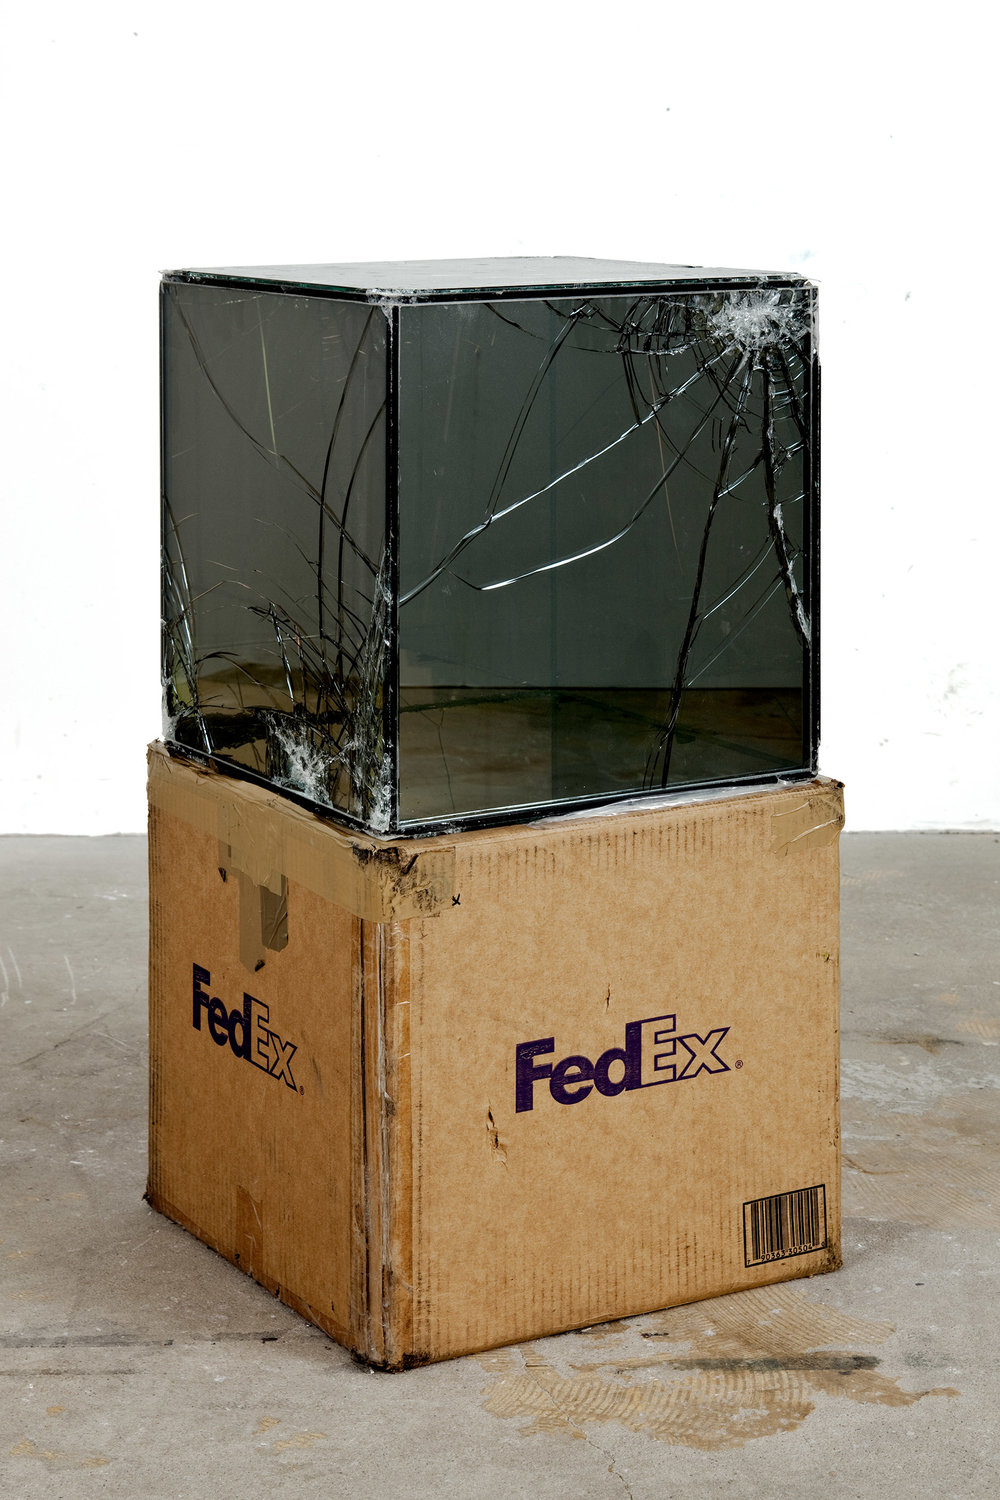 FedEx® Kraft Box  © 2005 FEDEX 330504 10/05 SSCC, Priority Overnight, Los Angeles–Miami trk#865344981314, October 29–30, 2008, Priority Overnight, Miami–Los Angeles trk#861049125089, November 17–18, 2008, Priority Overnight, Los Angeles-Miami Beach trk#860147611241, December 01–02, 2008, Priority Overnight, Miami–Los Angeles trk#867525901310, December 08–09, 2008, Priority Overnight, Los Angeles–Ann Arbor trk#867525901228, March 09–10, 2009, Standard Overnight, Ann Arbor–Los Angeles trk#868274625705, July 09–10, 2009, Standard Overnight, Los Angeles–San Francisco trk#870069766460, August 27–28, 2009, Standard Overnight, San Francisco–Los Angeles trk#870342520112, November 12–13, 2009   2008–  Laminated Mirropane, FedEx shipping box, accrued FedEx shipping and tracking labels, silicone, metal, tape  16 x 16 x 16 inches   FedEx Glass Works, 2007–    Pulleys, Cogwheels, Mirrors, and Windows, 2009